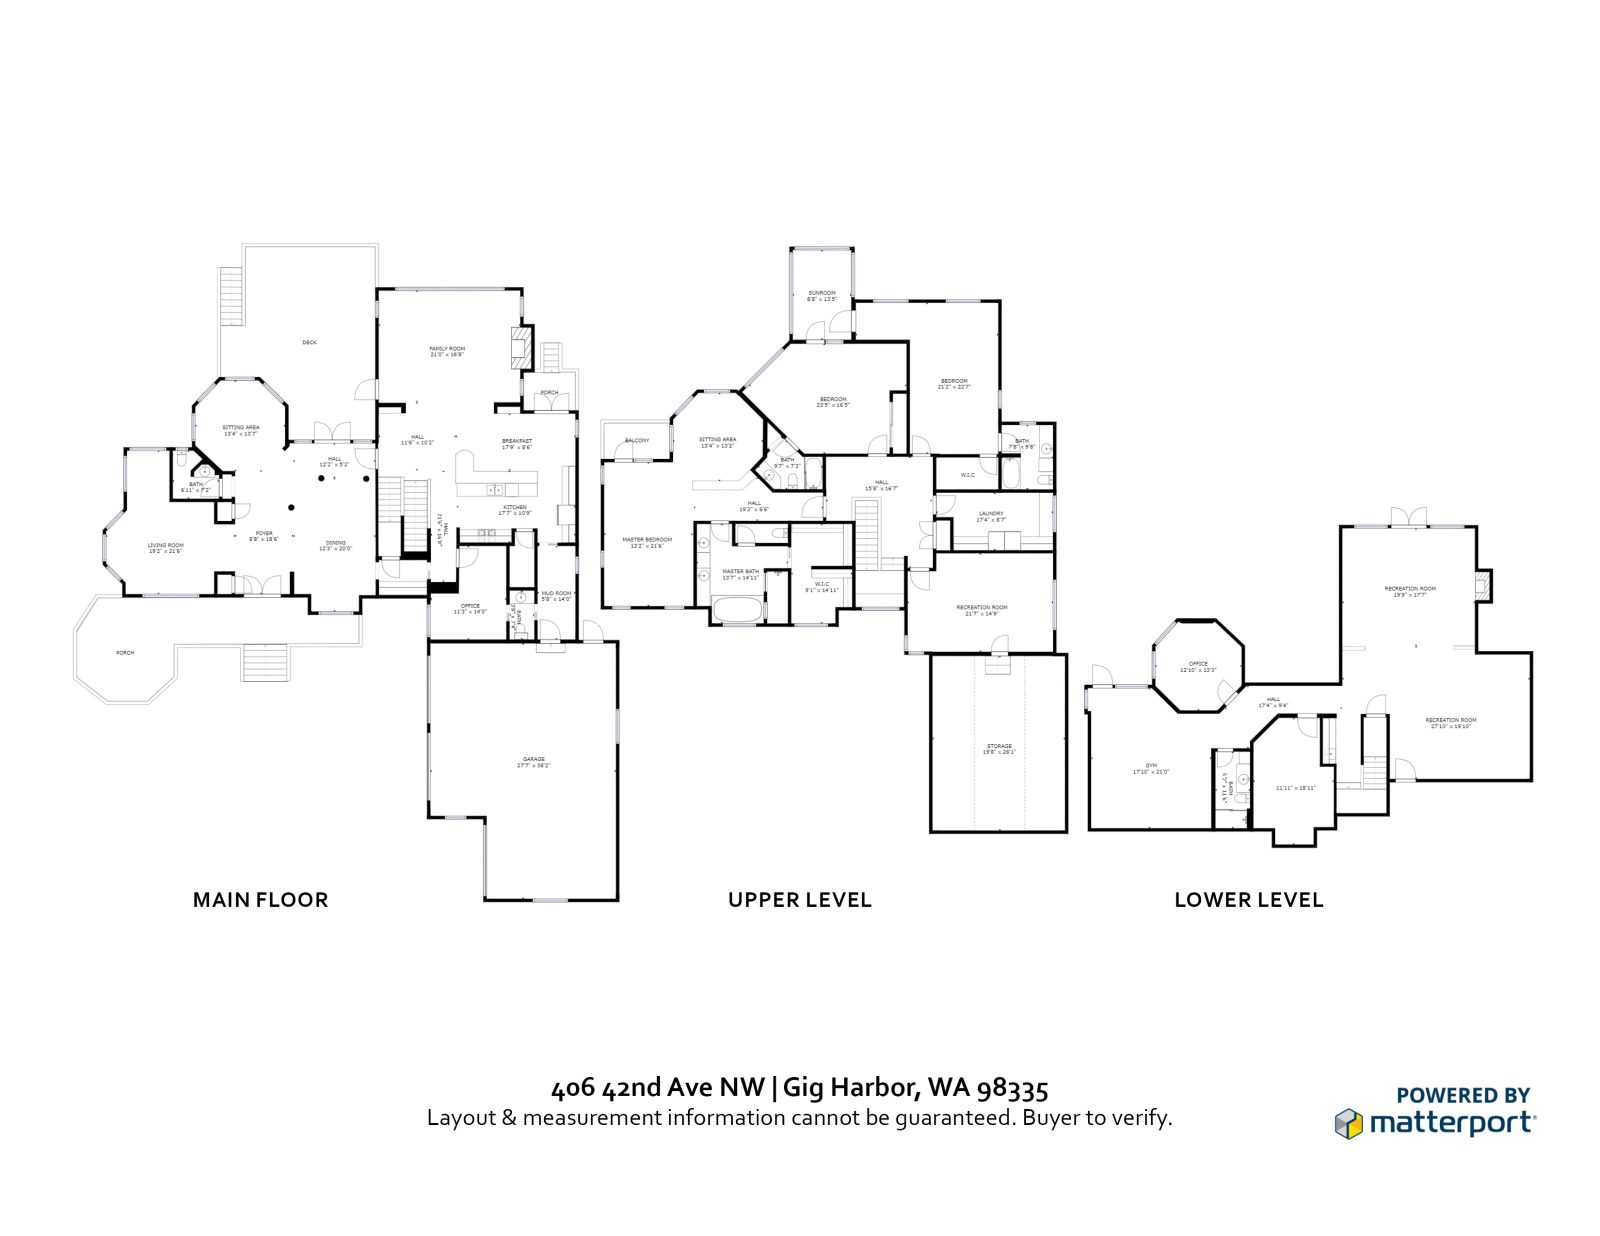 FLOOR PLAN: 406 42nd Ave NW, Gig Harbor WA 98335